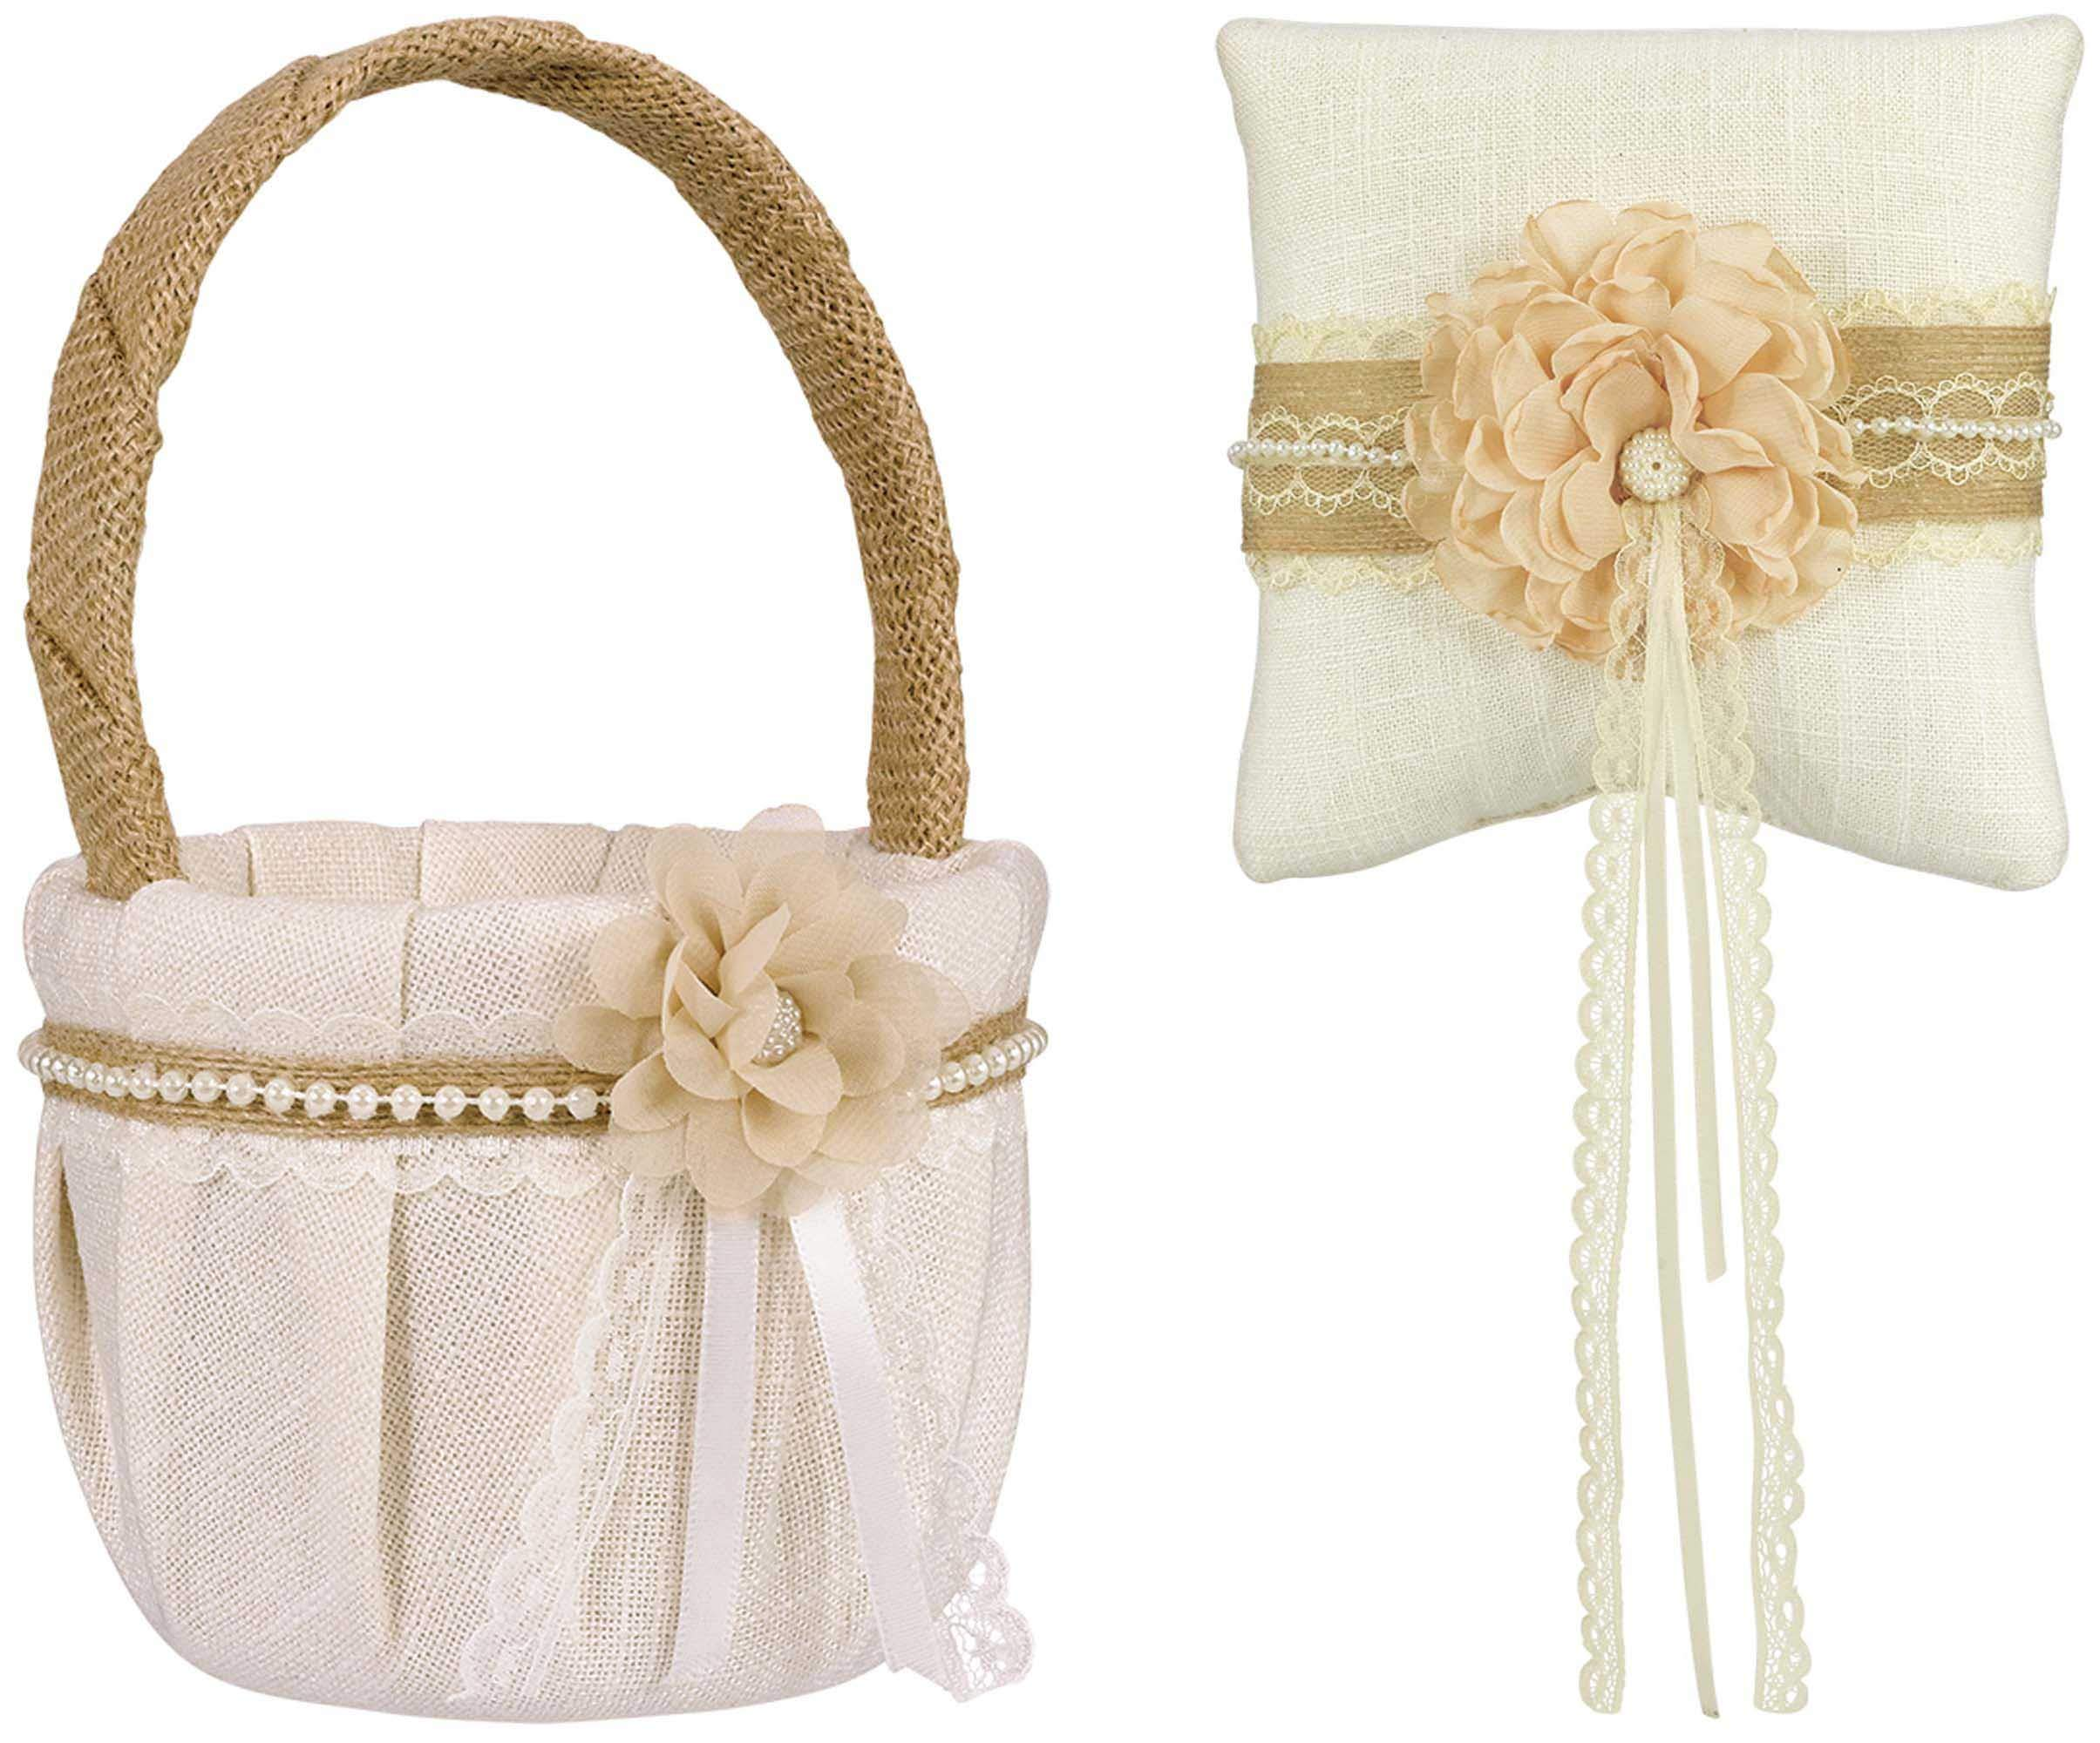 Stephanie Imports Rustic Ring Pillow with Matching Flower Basket Wrapped in Lace Fabric & Burlap with Pearls by Stephanie Imports